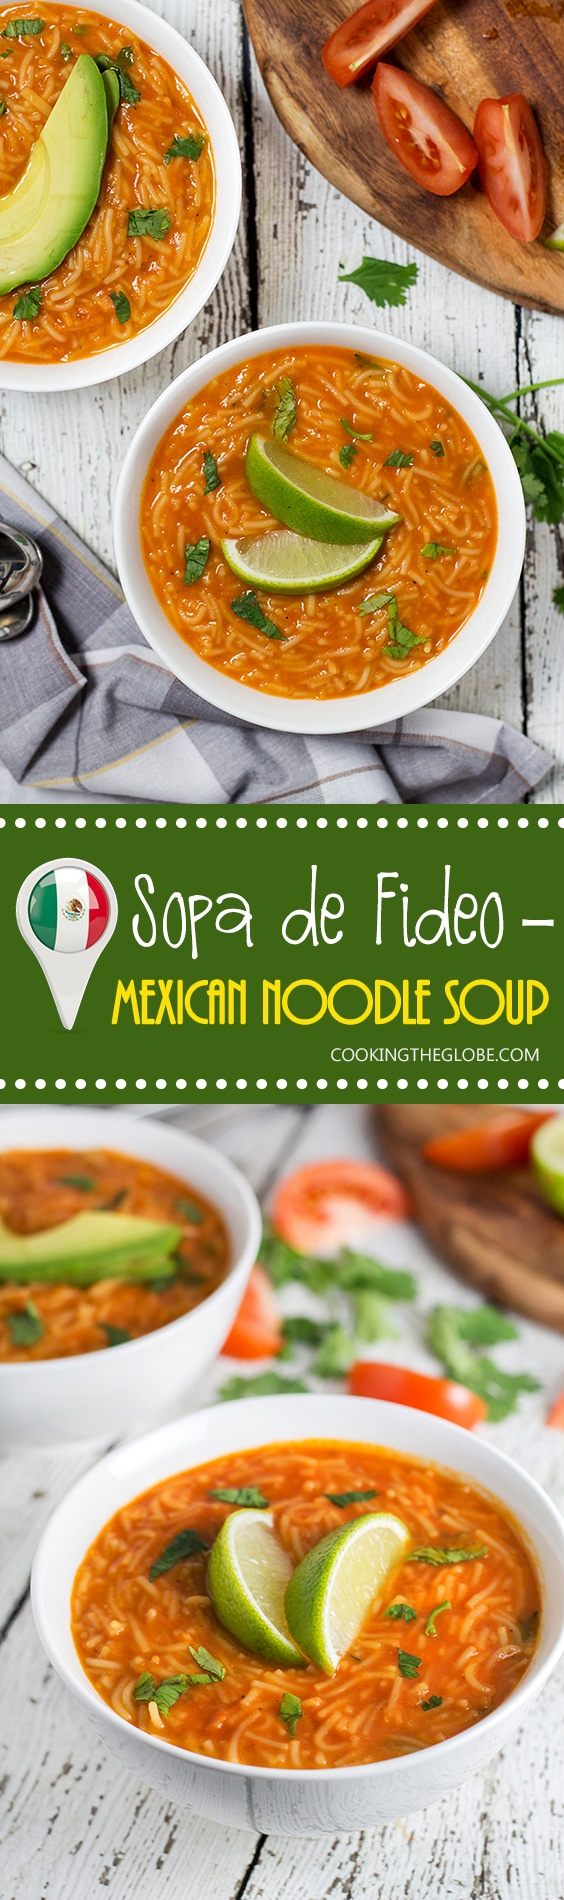 This hearty and comforting Mexican tomato noodle soup, called Sopa de Fideo, is a true feast of flavors!